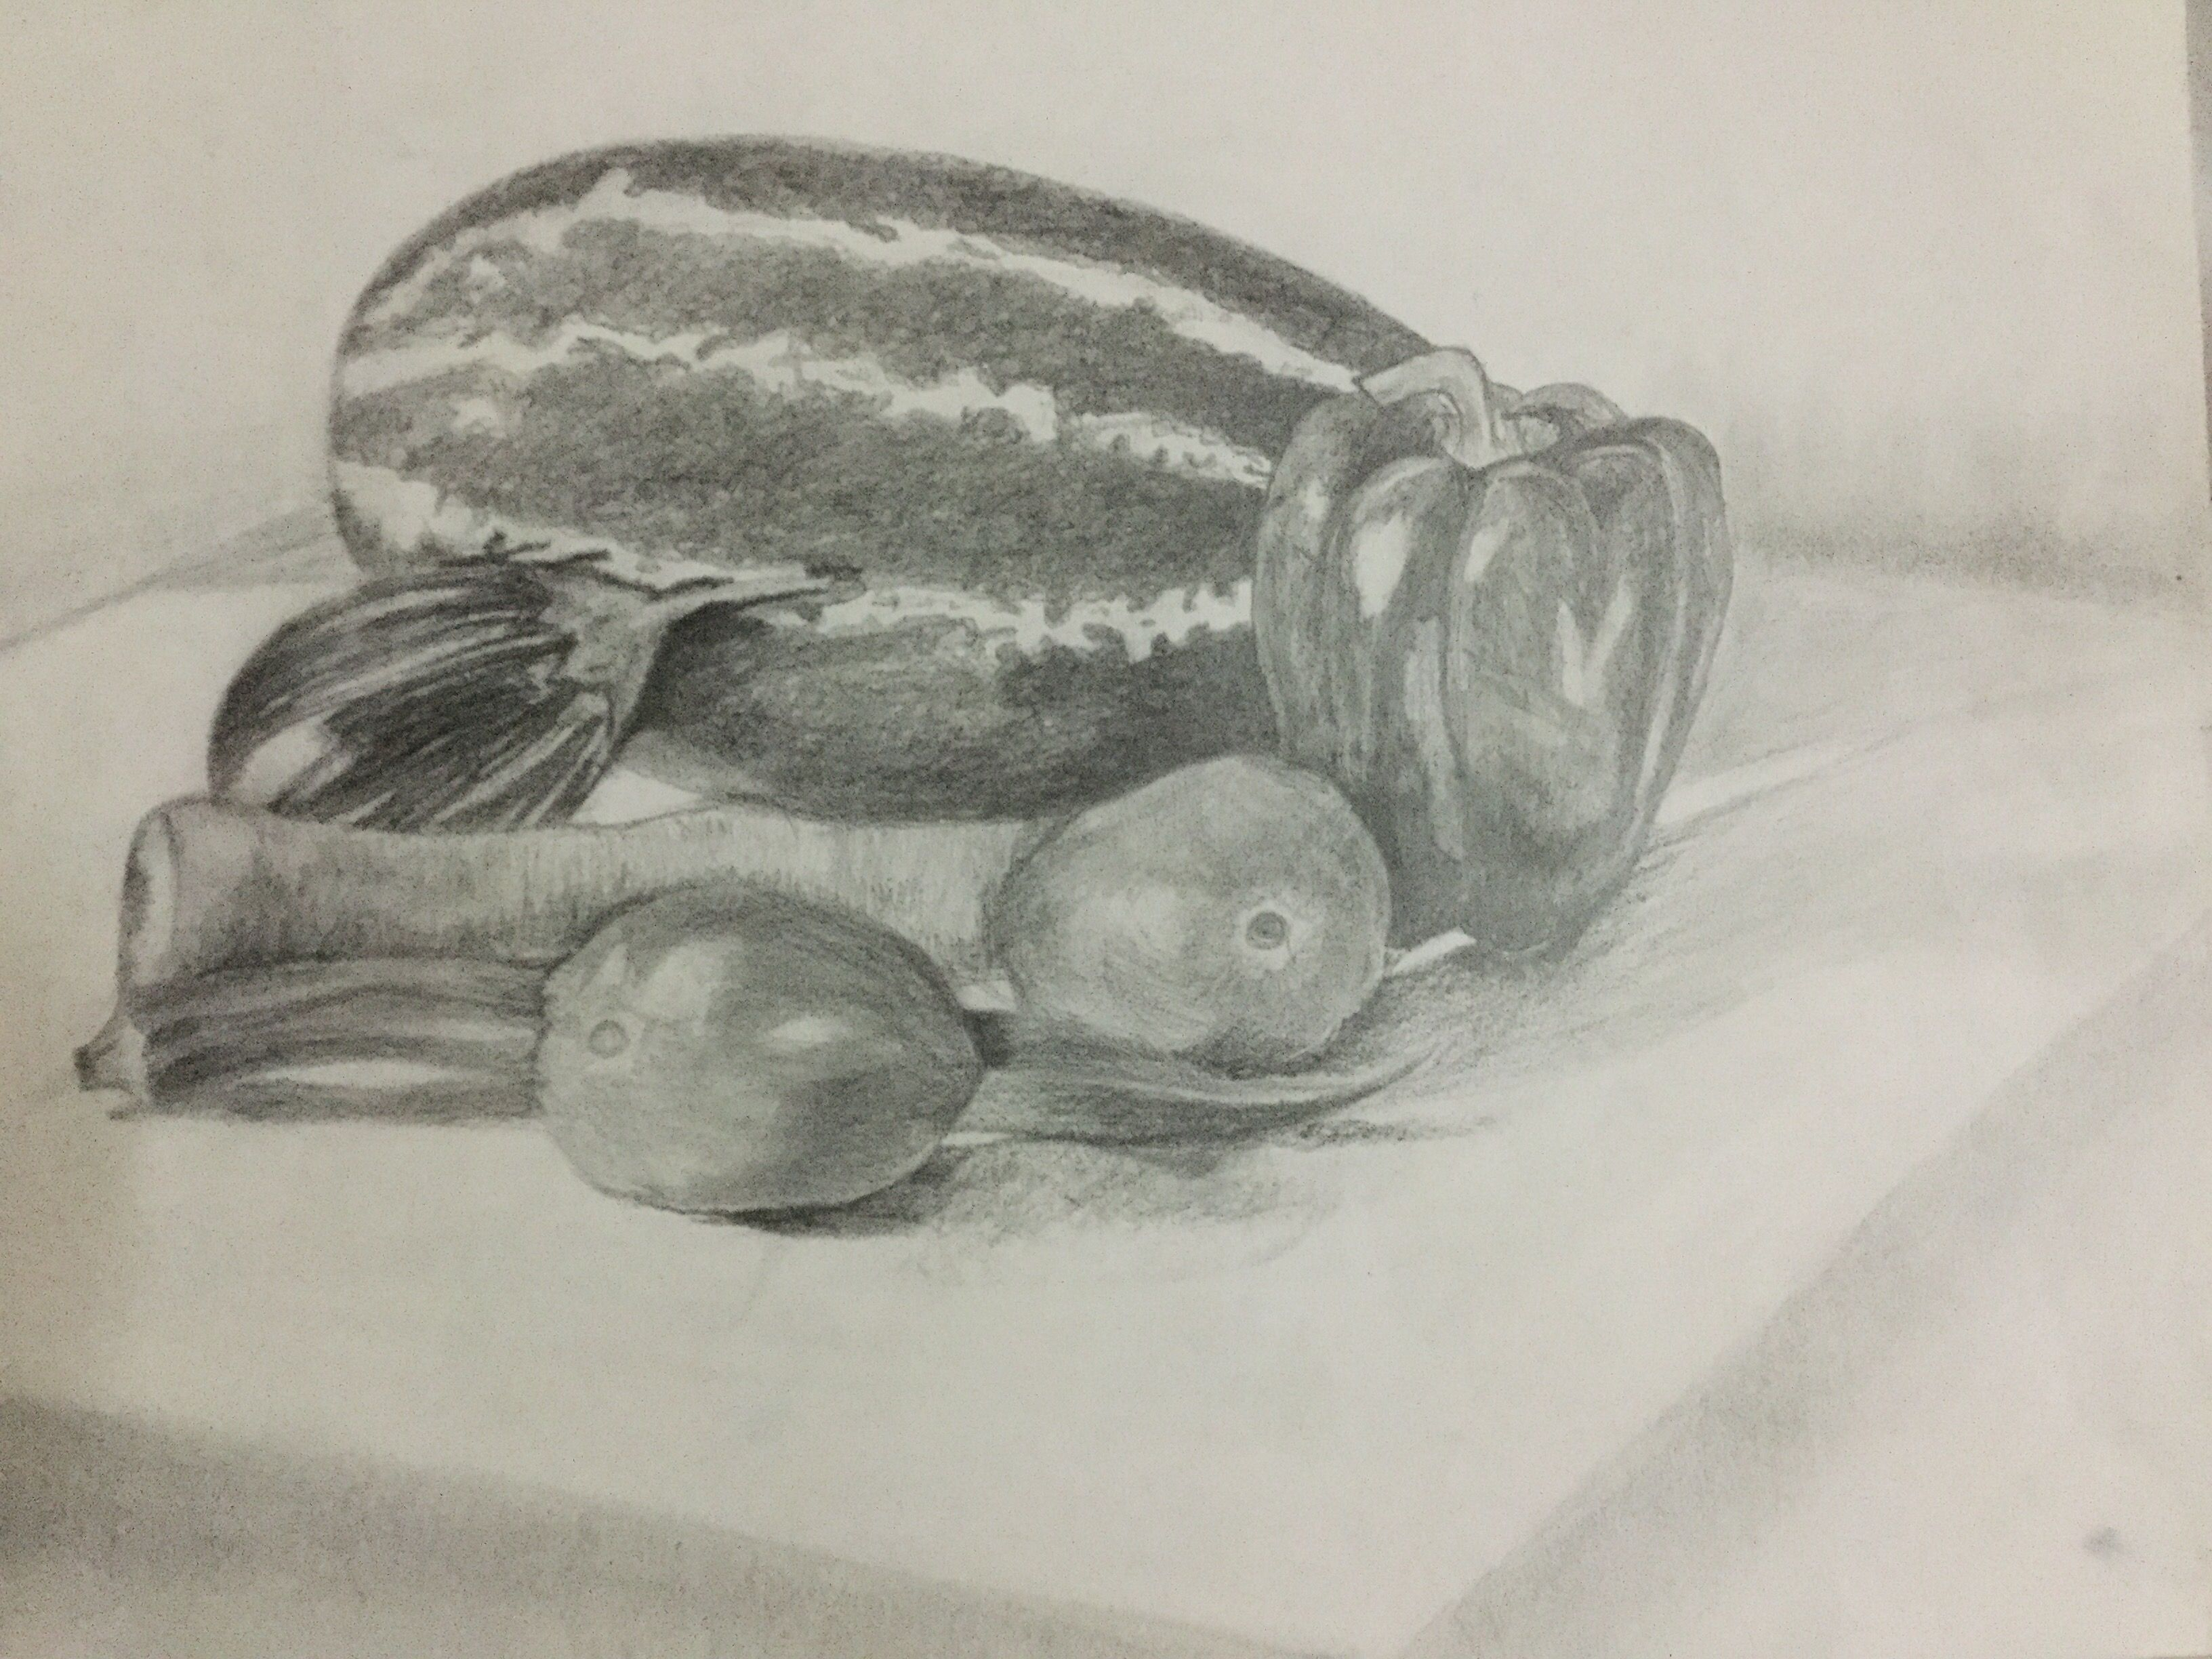 Vegetables pencil shading